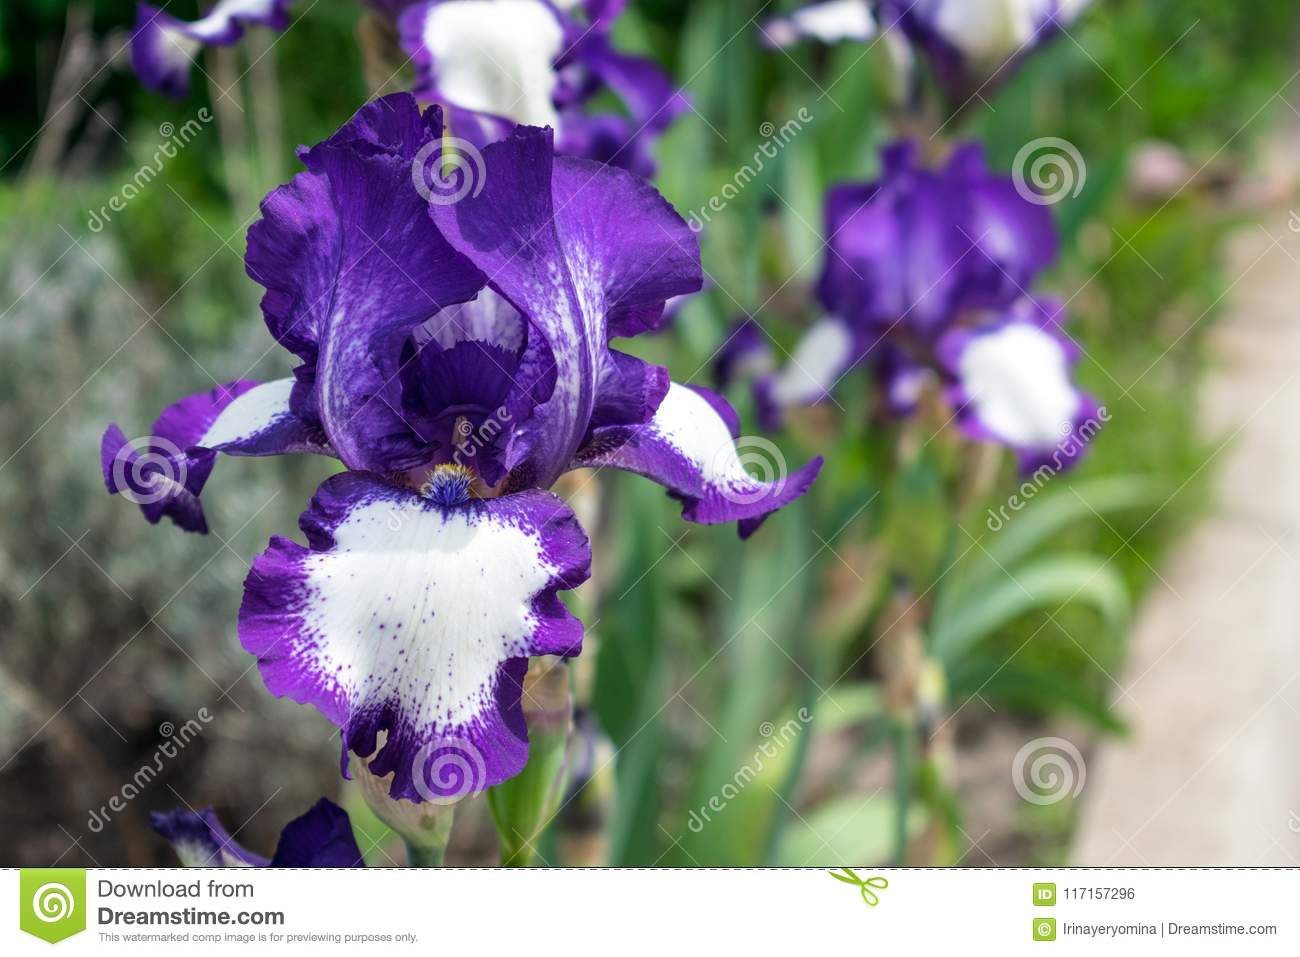 Close up view of an iris flower on background of green leaves an close up view of an iris flower on background of green leaves an izmirmasajfo